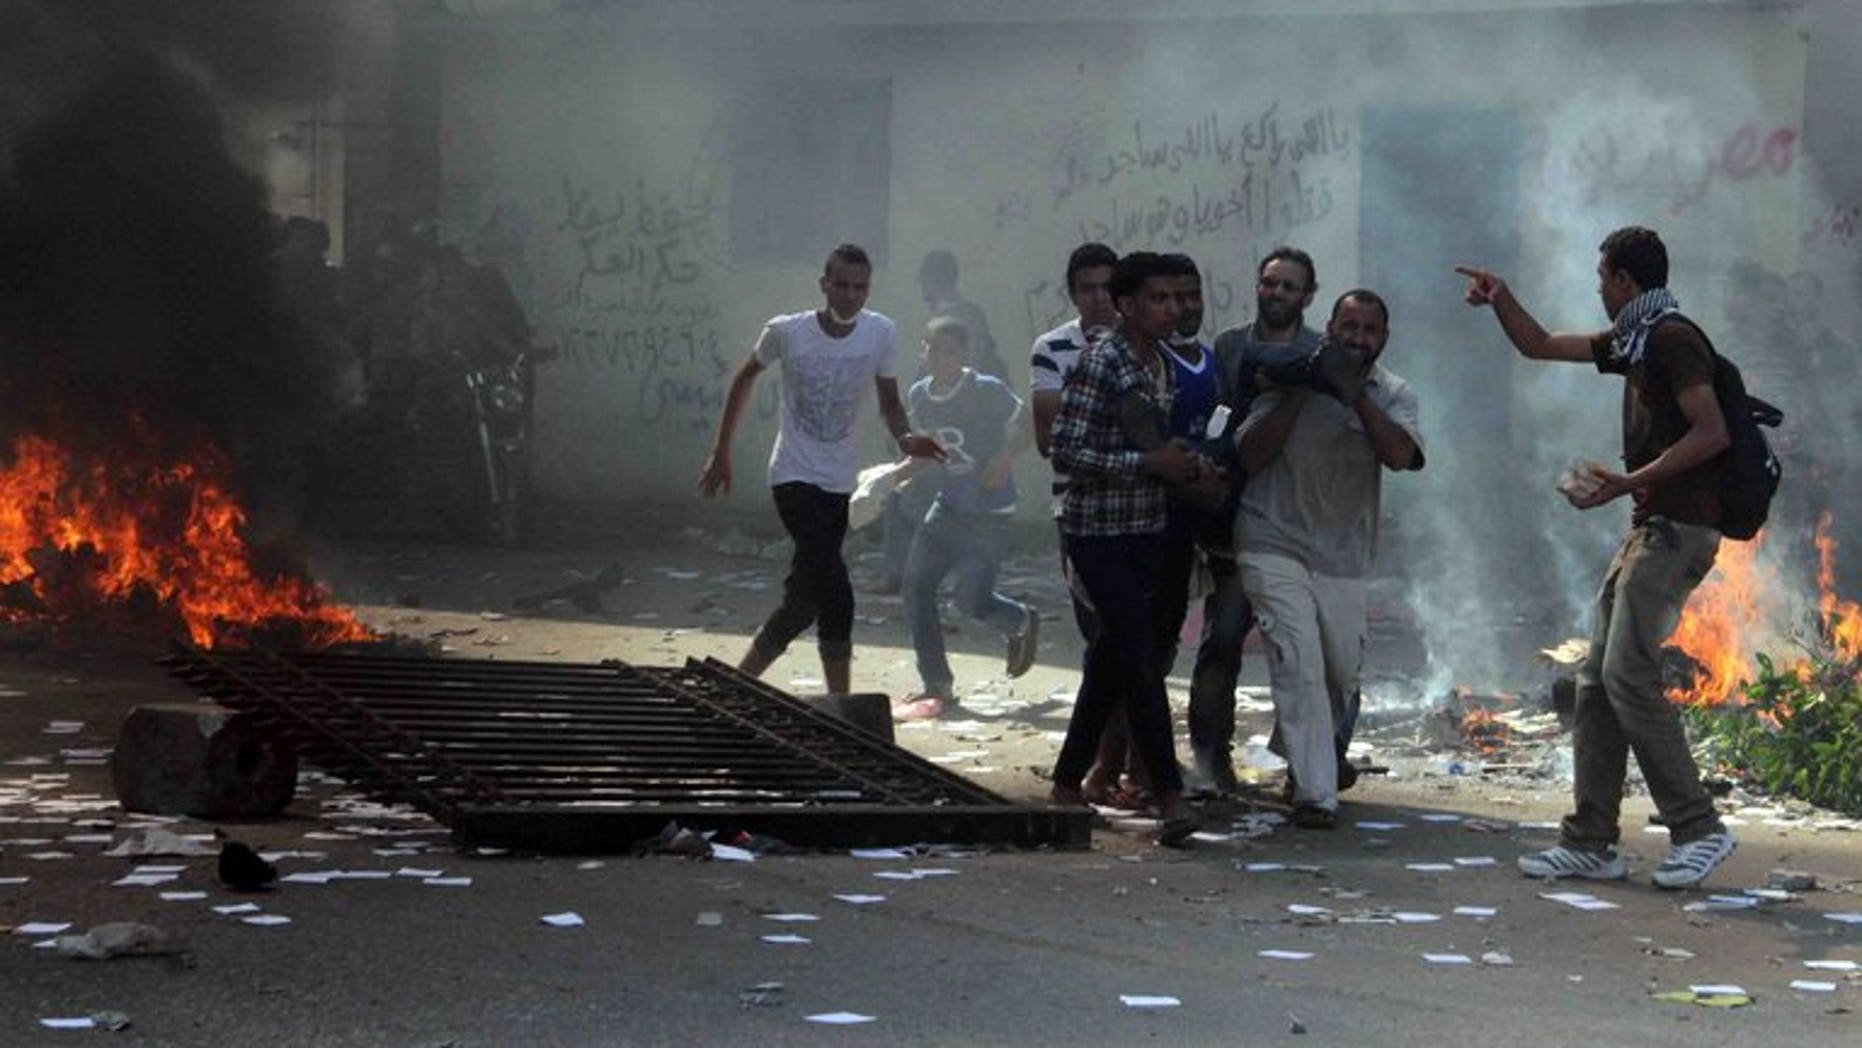 Egyptian Muslim Brotherhood supporters carry a wounded man in Cairo's Ramses square on August 16, 2013. EU foreign ministers Wednesday agreed to suspend the sale of security equipment and arms to Egypt, a statement said.